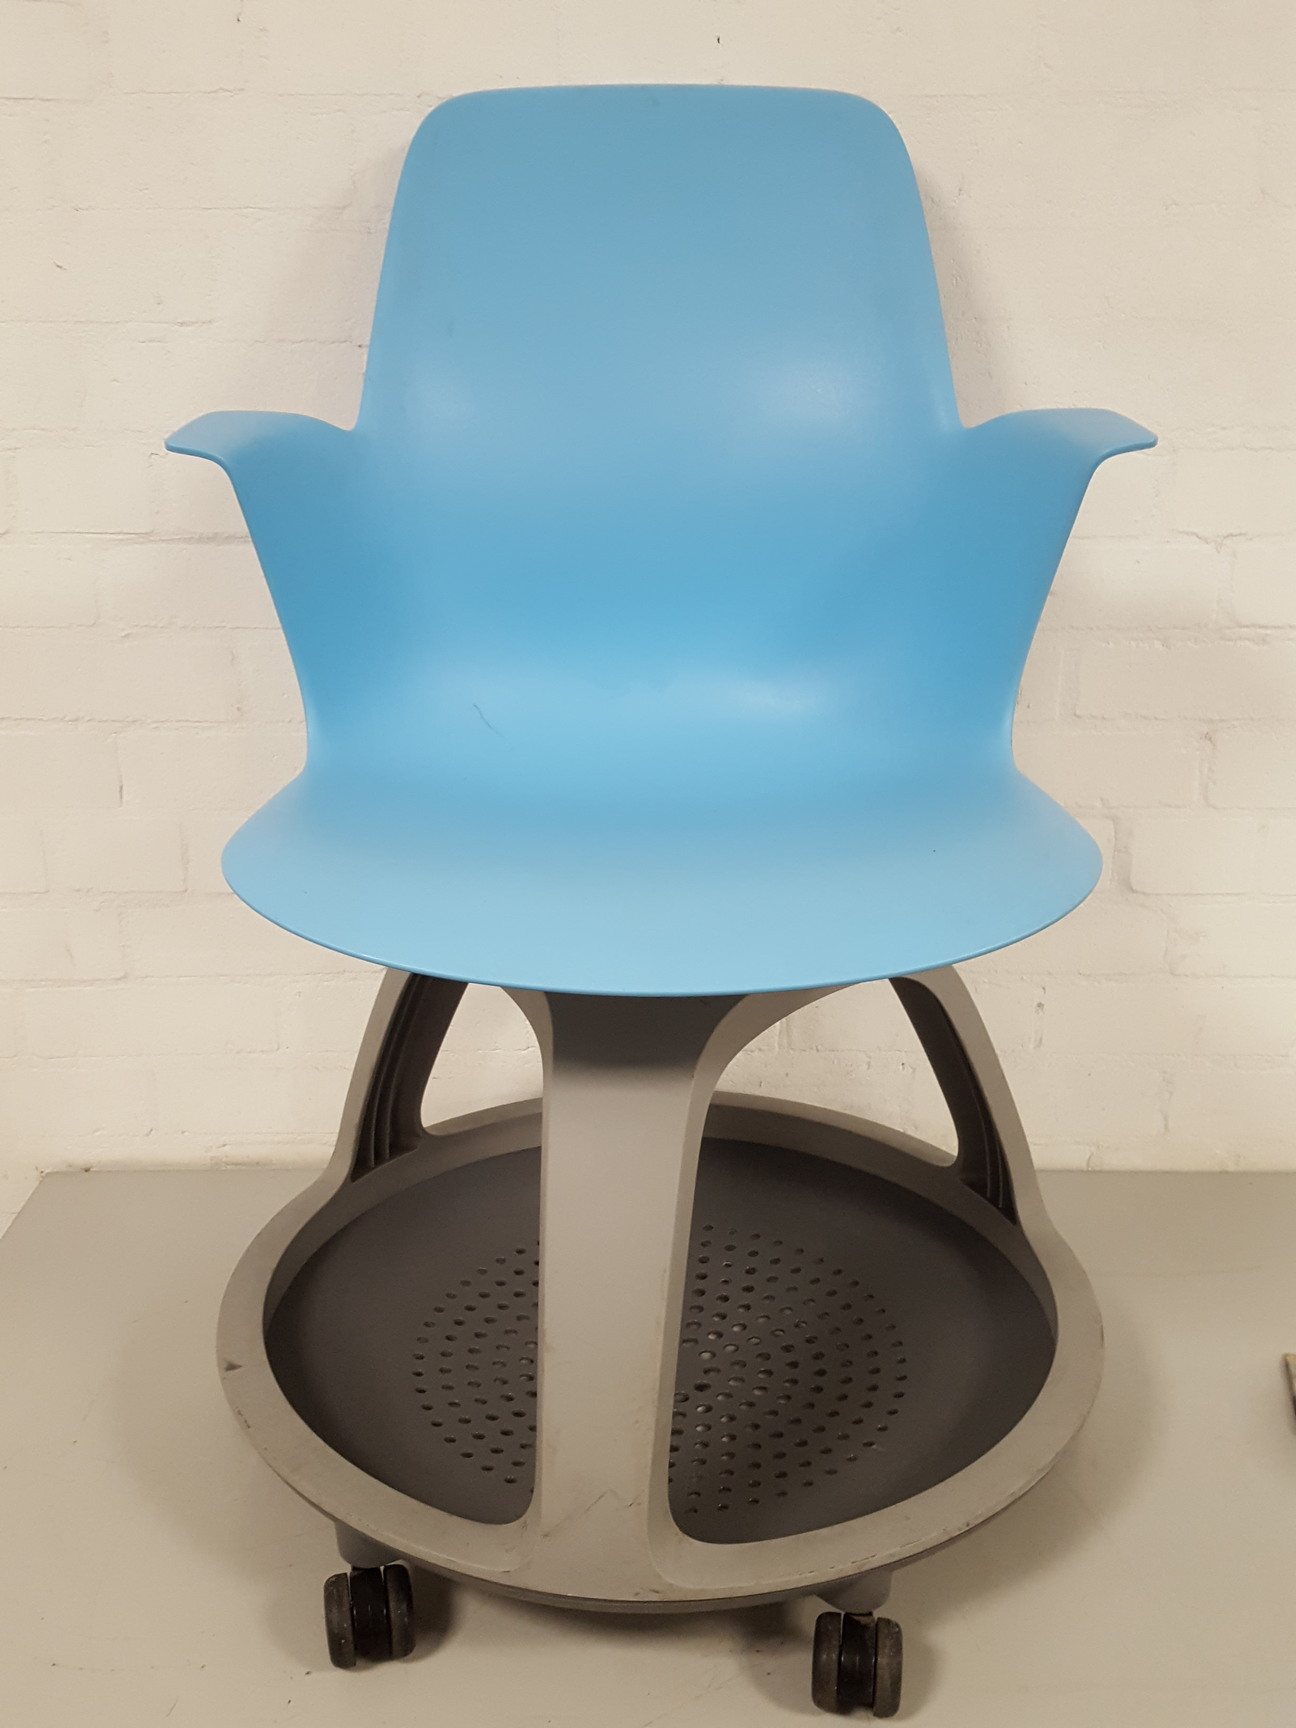 1 x Steelcase Node Chairs, Student / Patient Chair, with